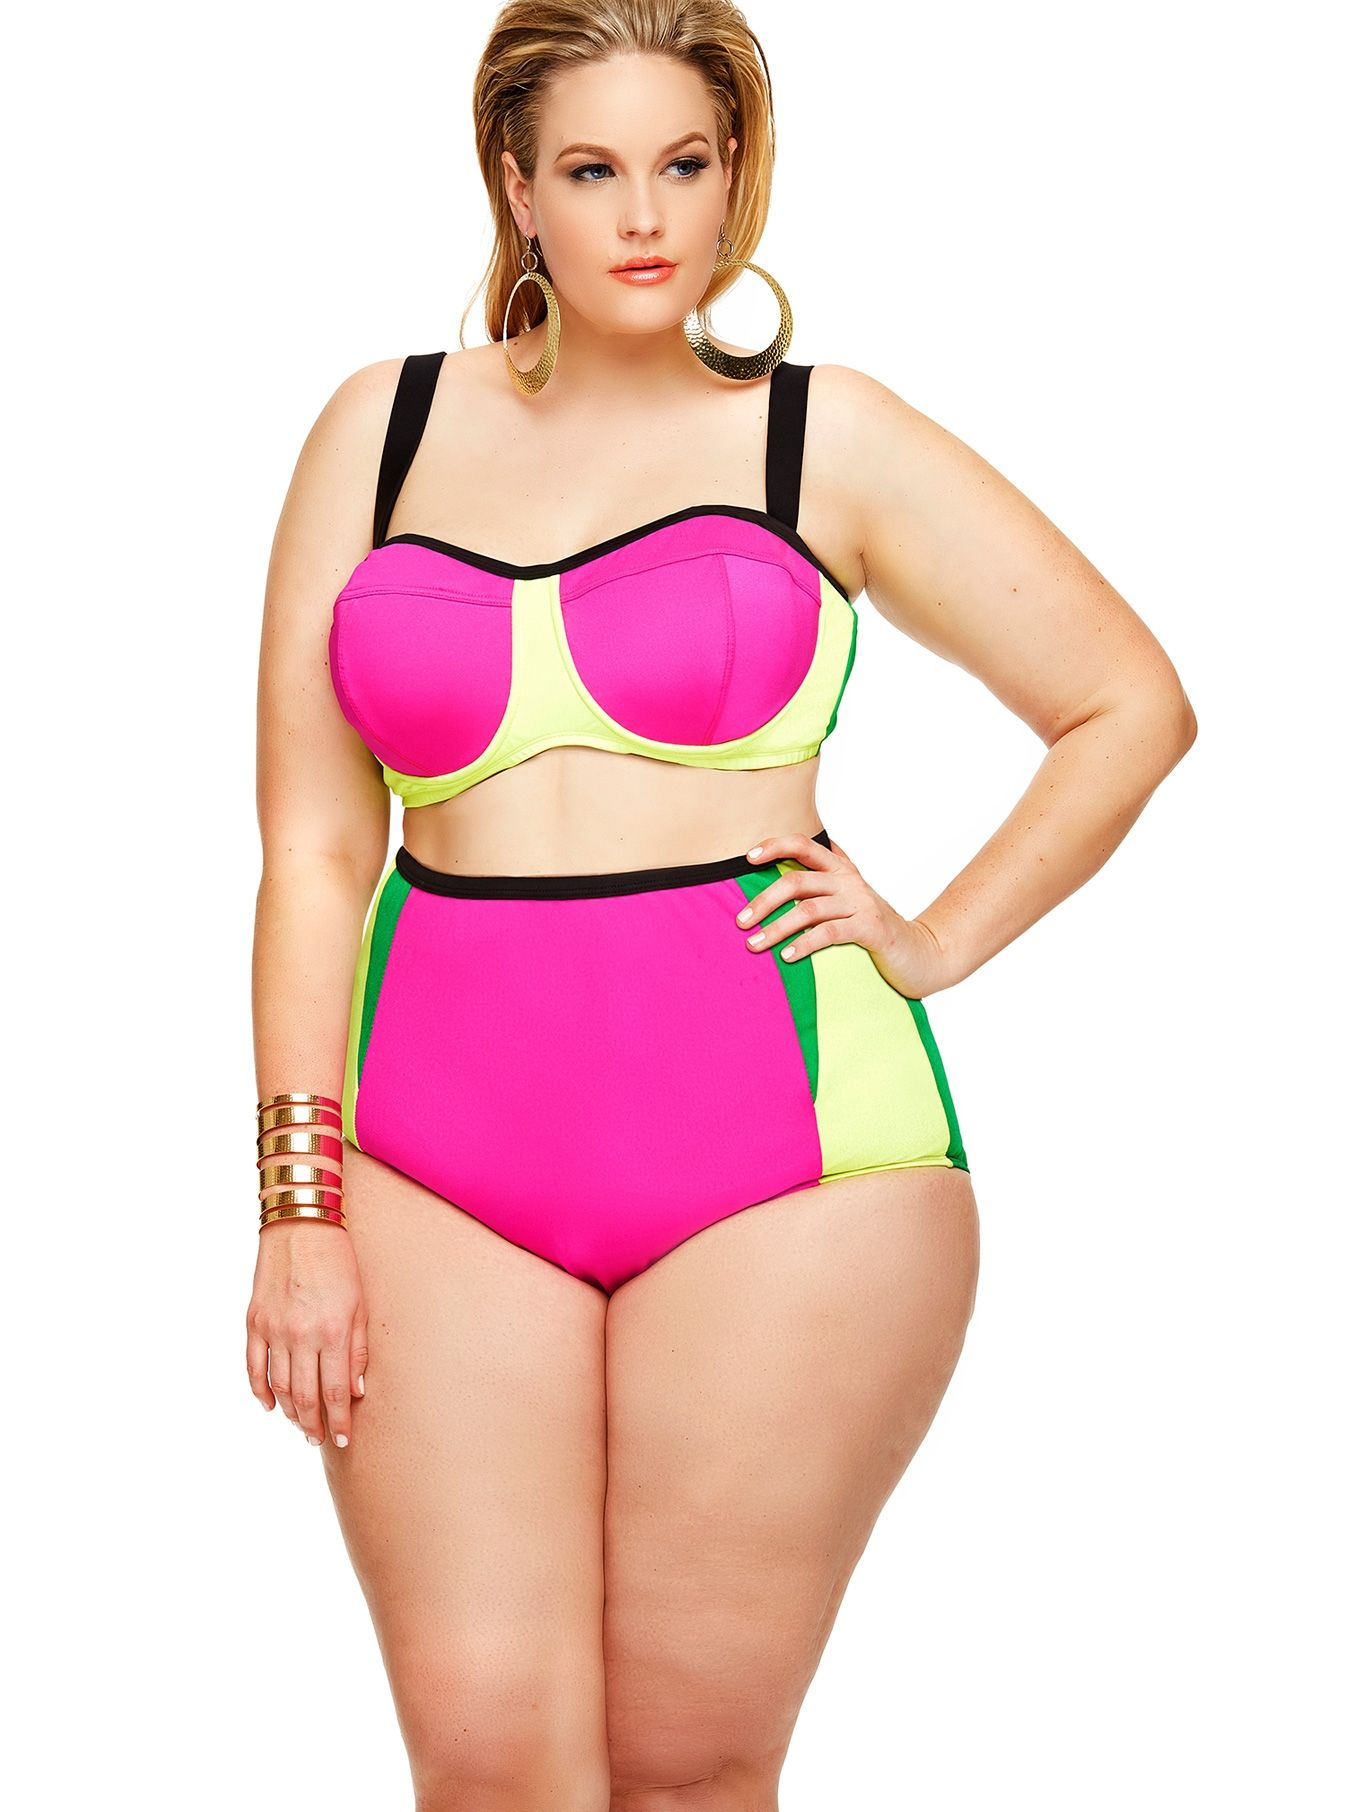 Plus Size Swimwear Make waves in a sexy one-piece, bikini, cover-up or sport styled swimwear. You'll be flaunting your curves with our fashionable prints, cuts and fabrics.